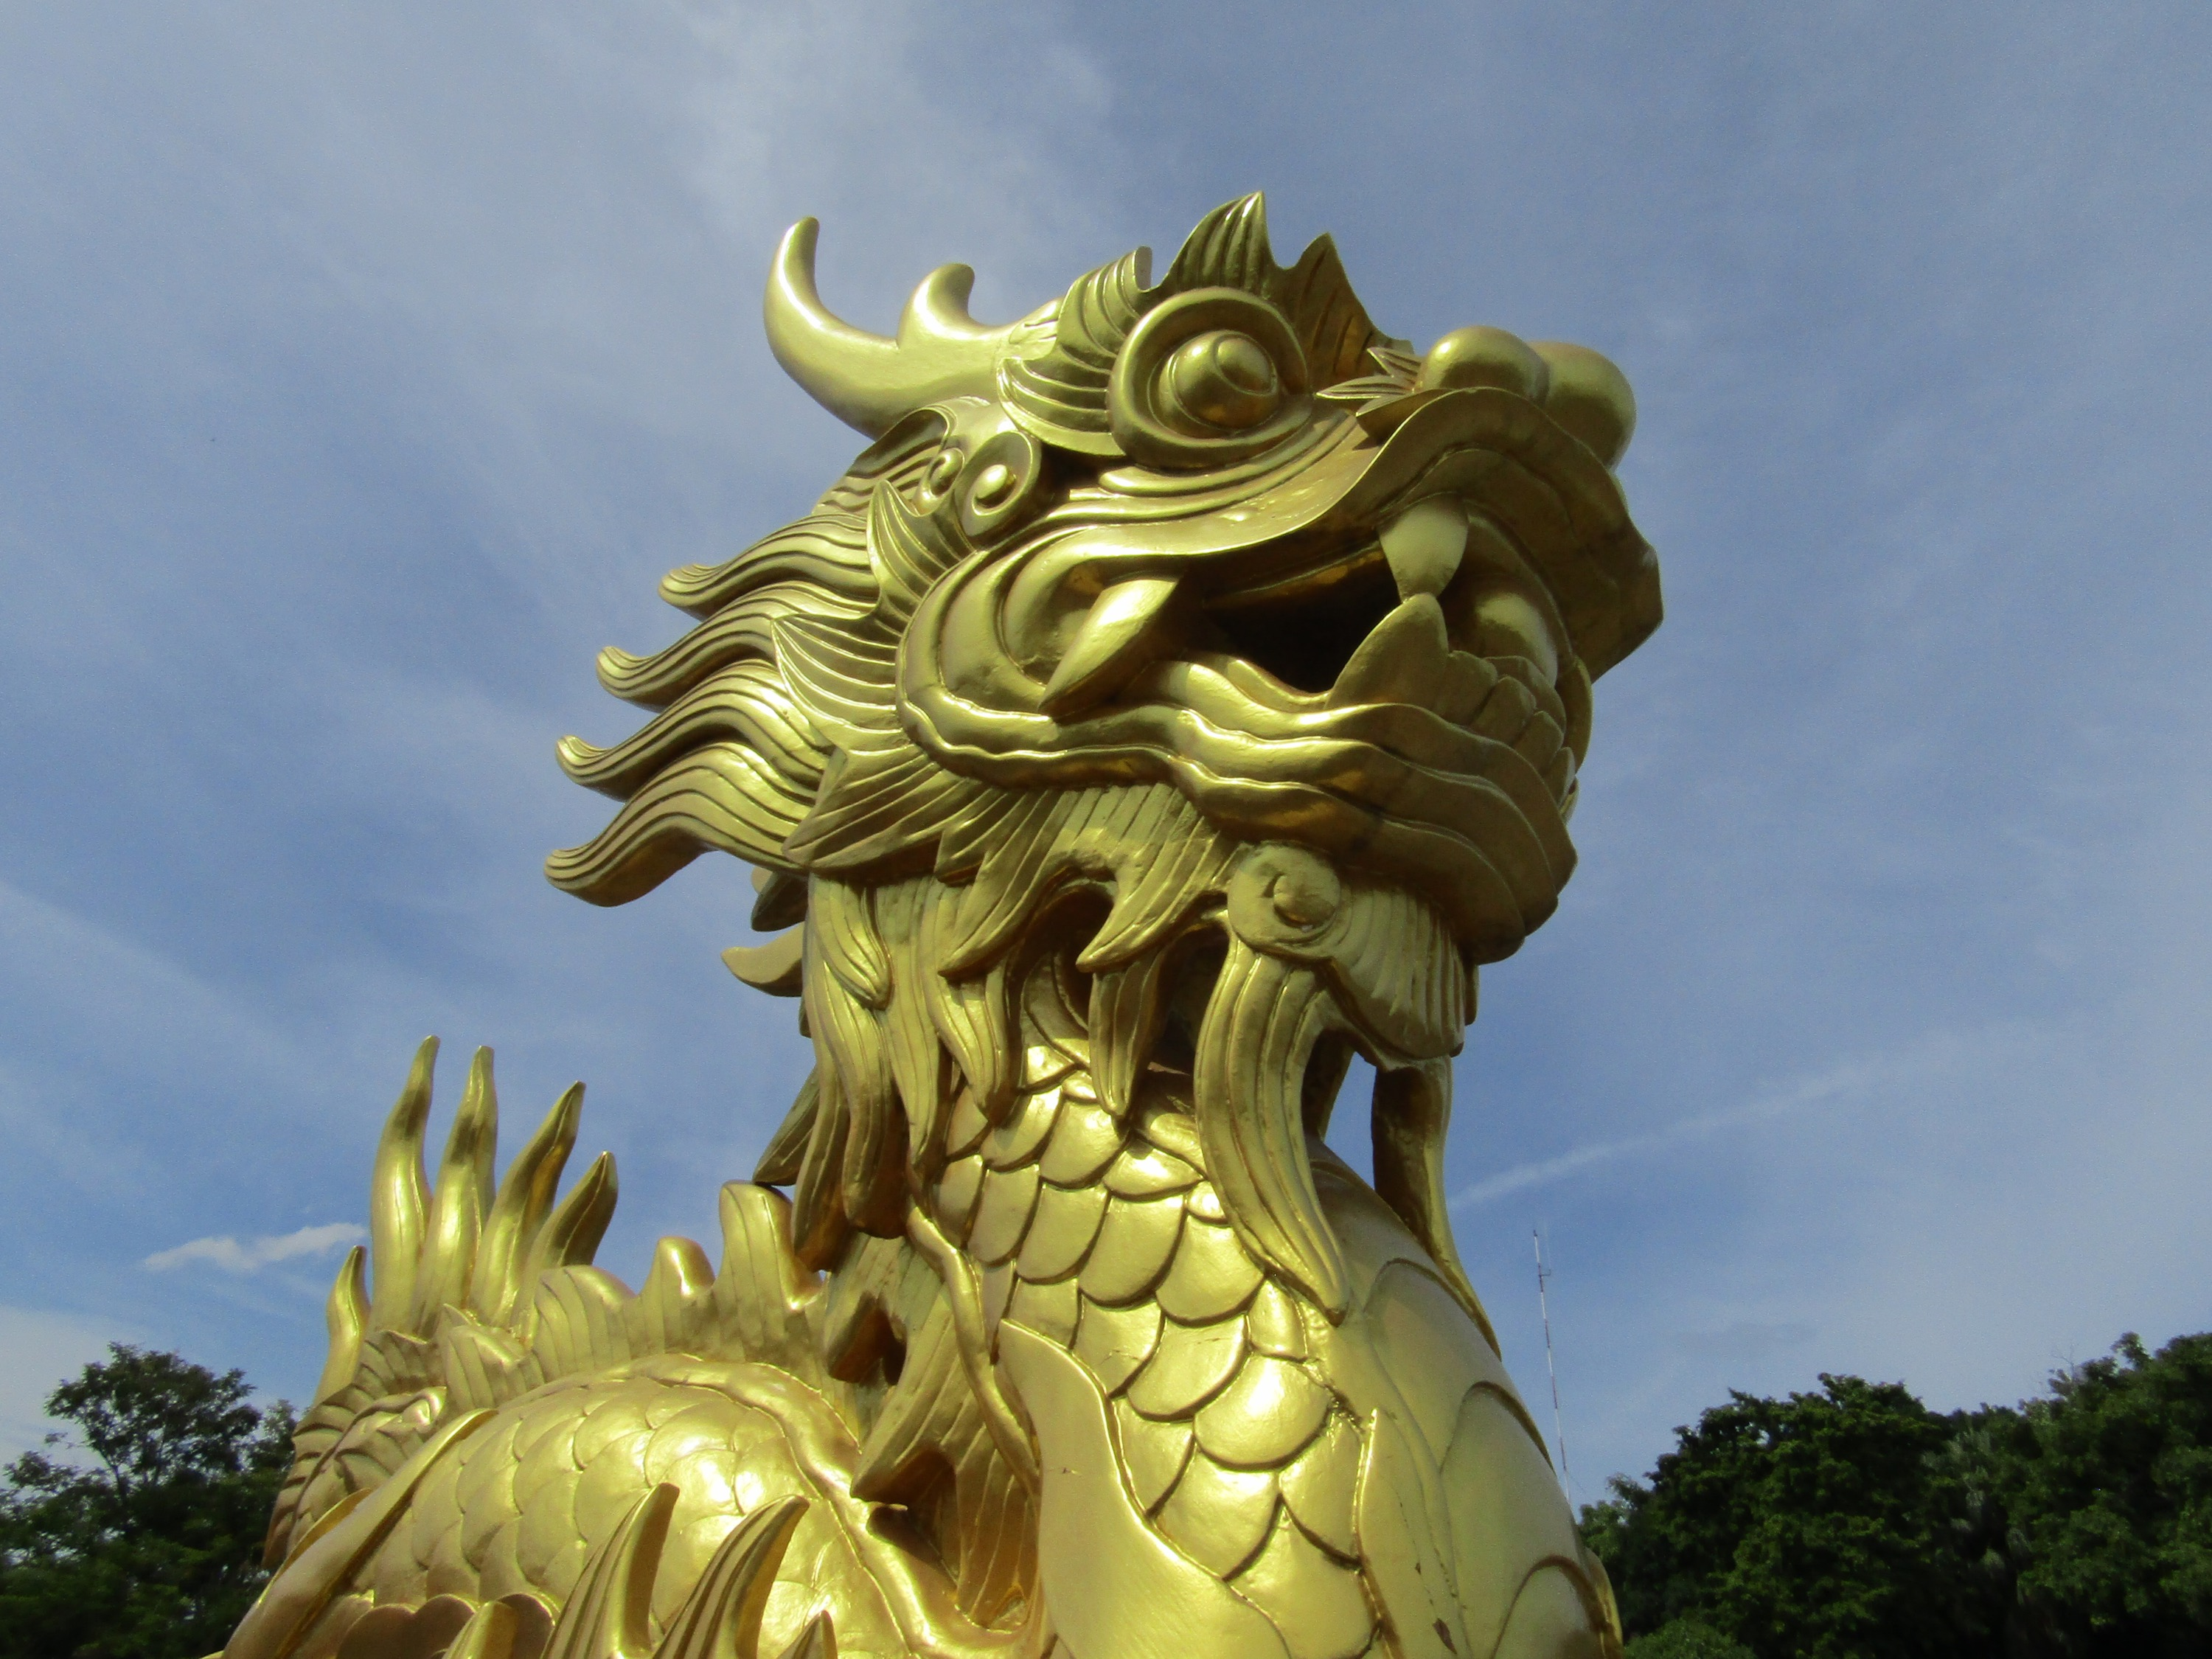 A golden dragon statue inside the Purple Forbidden City section of the Imperial Palace. Similar to the Forbidden City in Beijing, the area was restricted to only the imperial family.